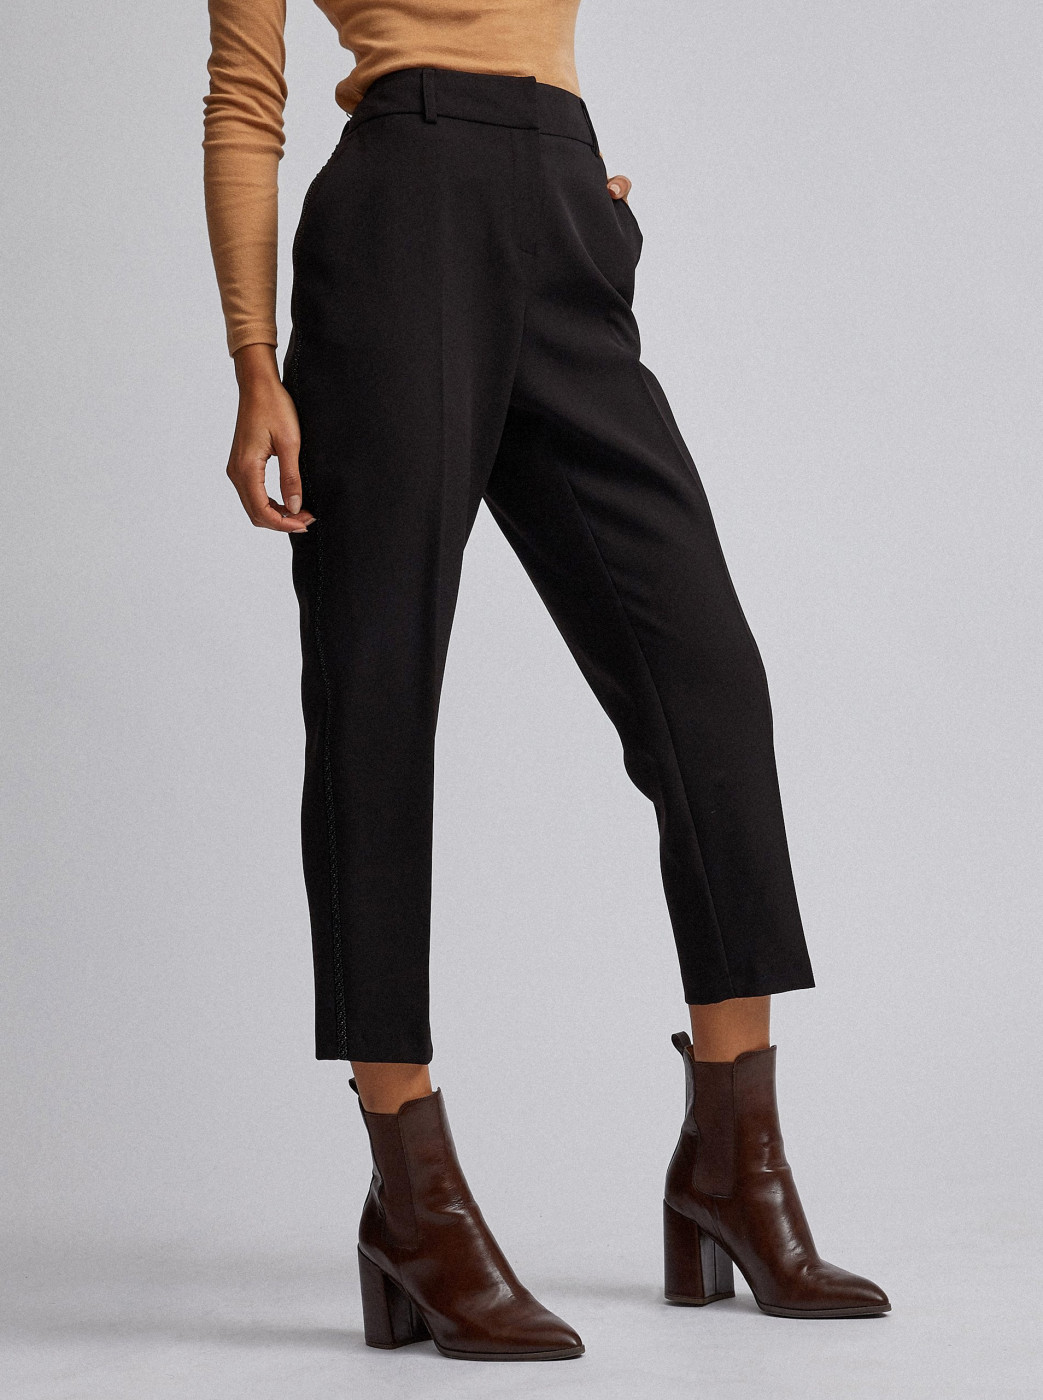 Black cropped trousers with Dorothy Perkins lamp